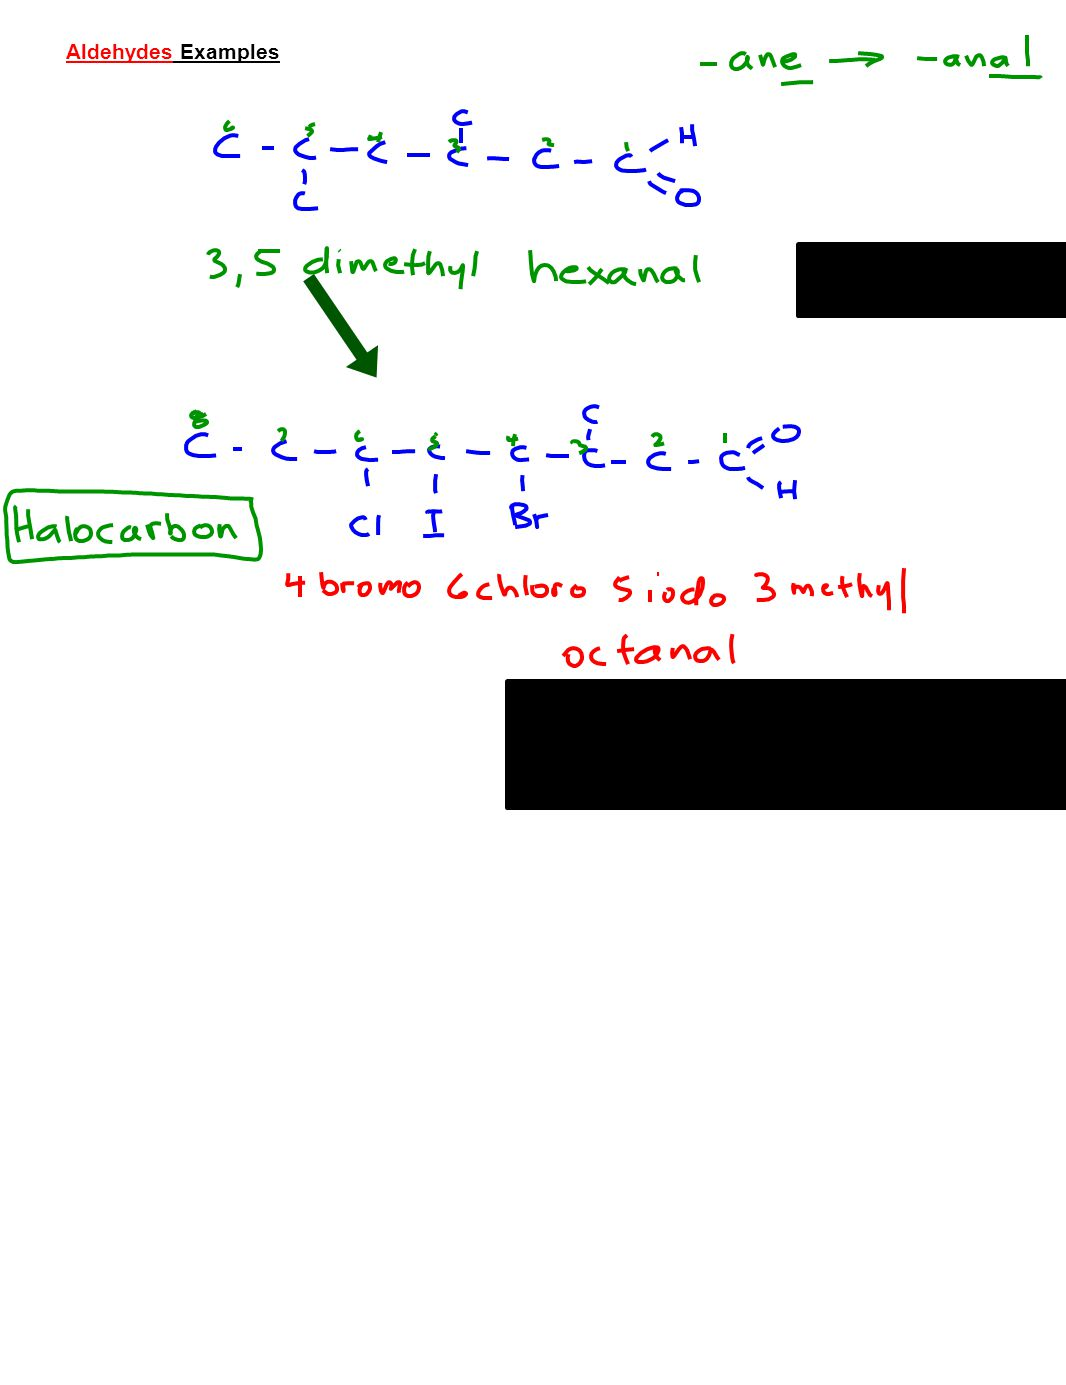 Aldehydes Examples